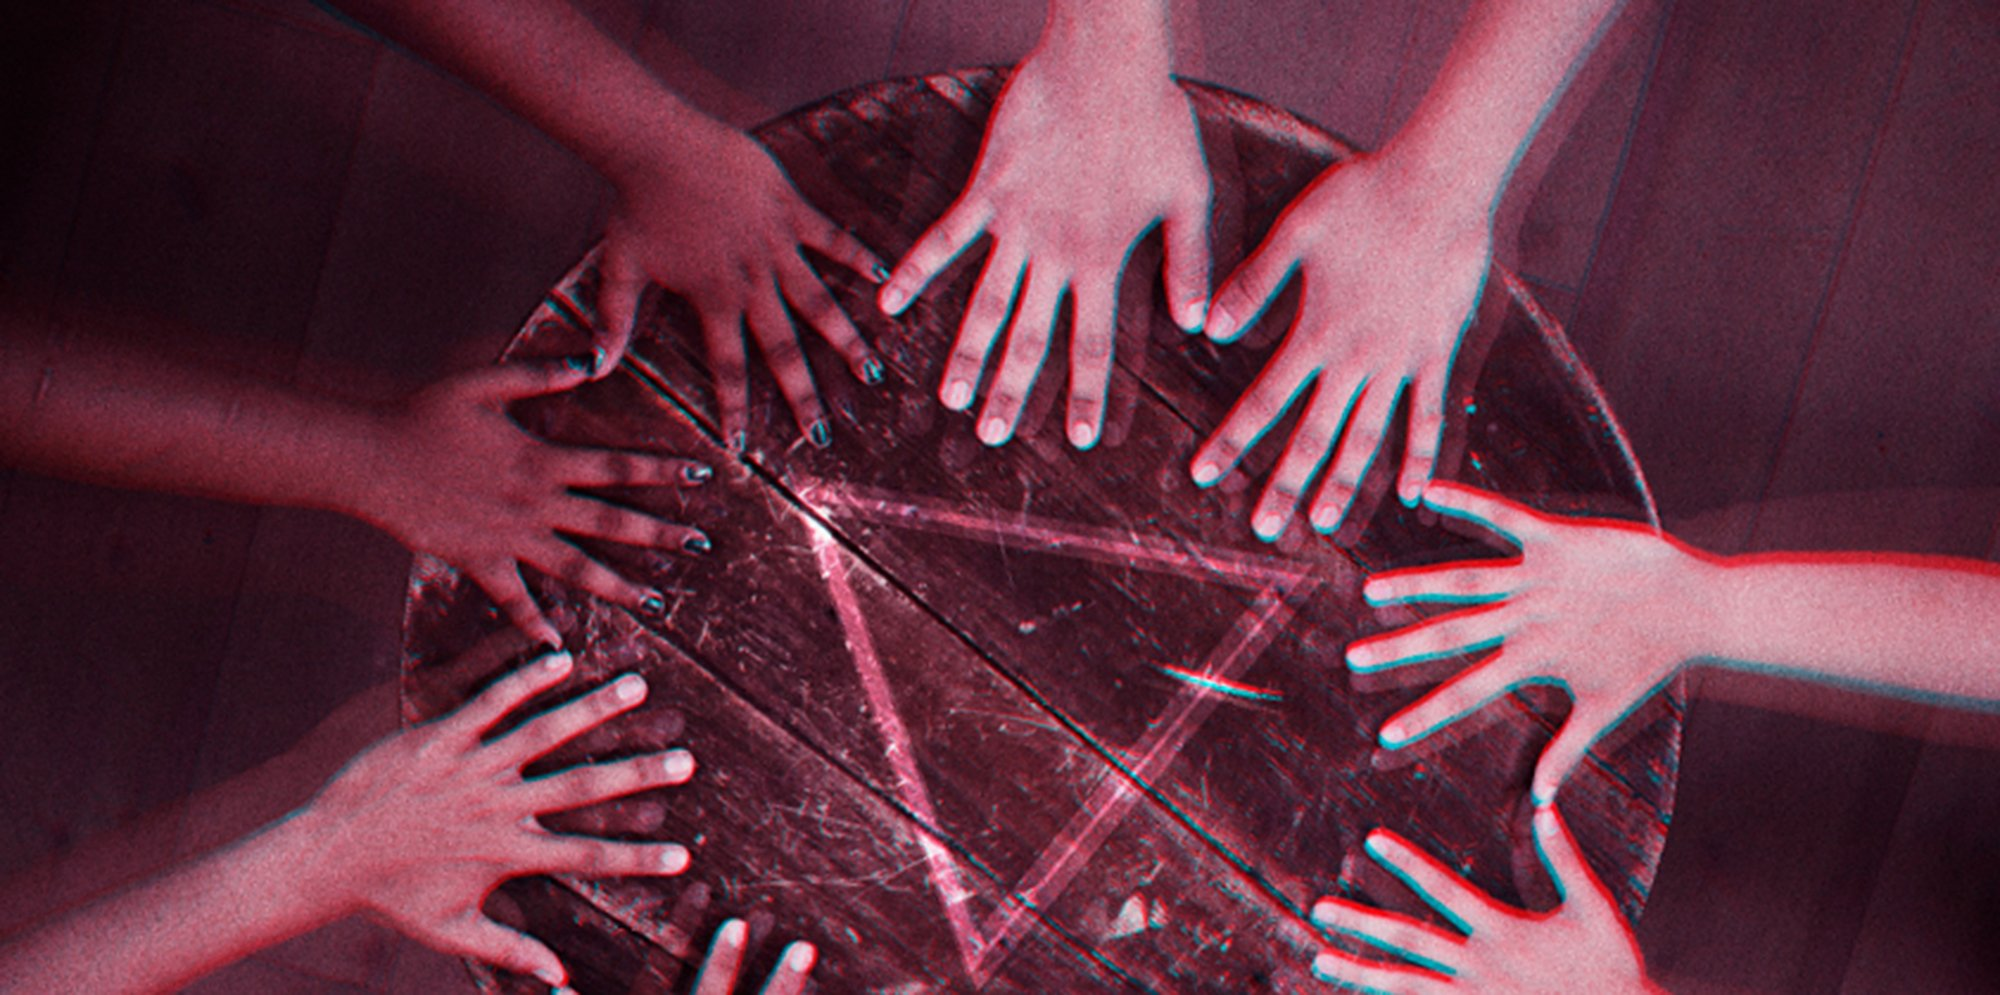 pictured from above, 4 peoples hands are placed around the edge of a round table with their little fingers touching, as if they're doing a seance. The colours in the image are strange, as if it has been badly developed.